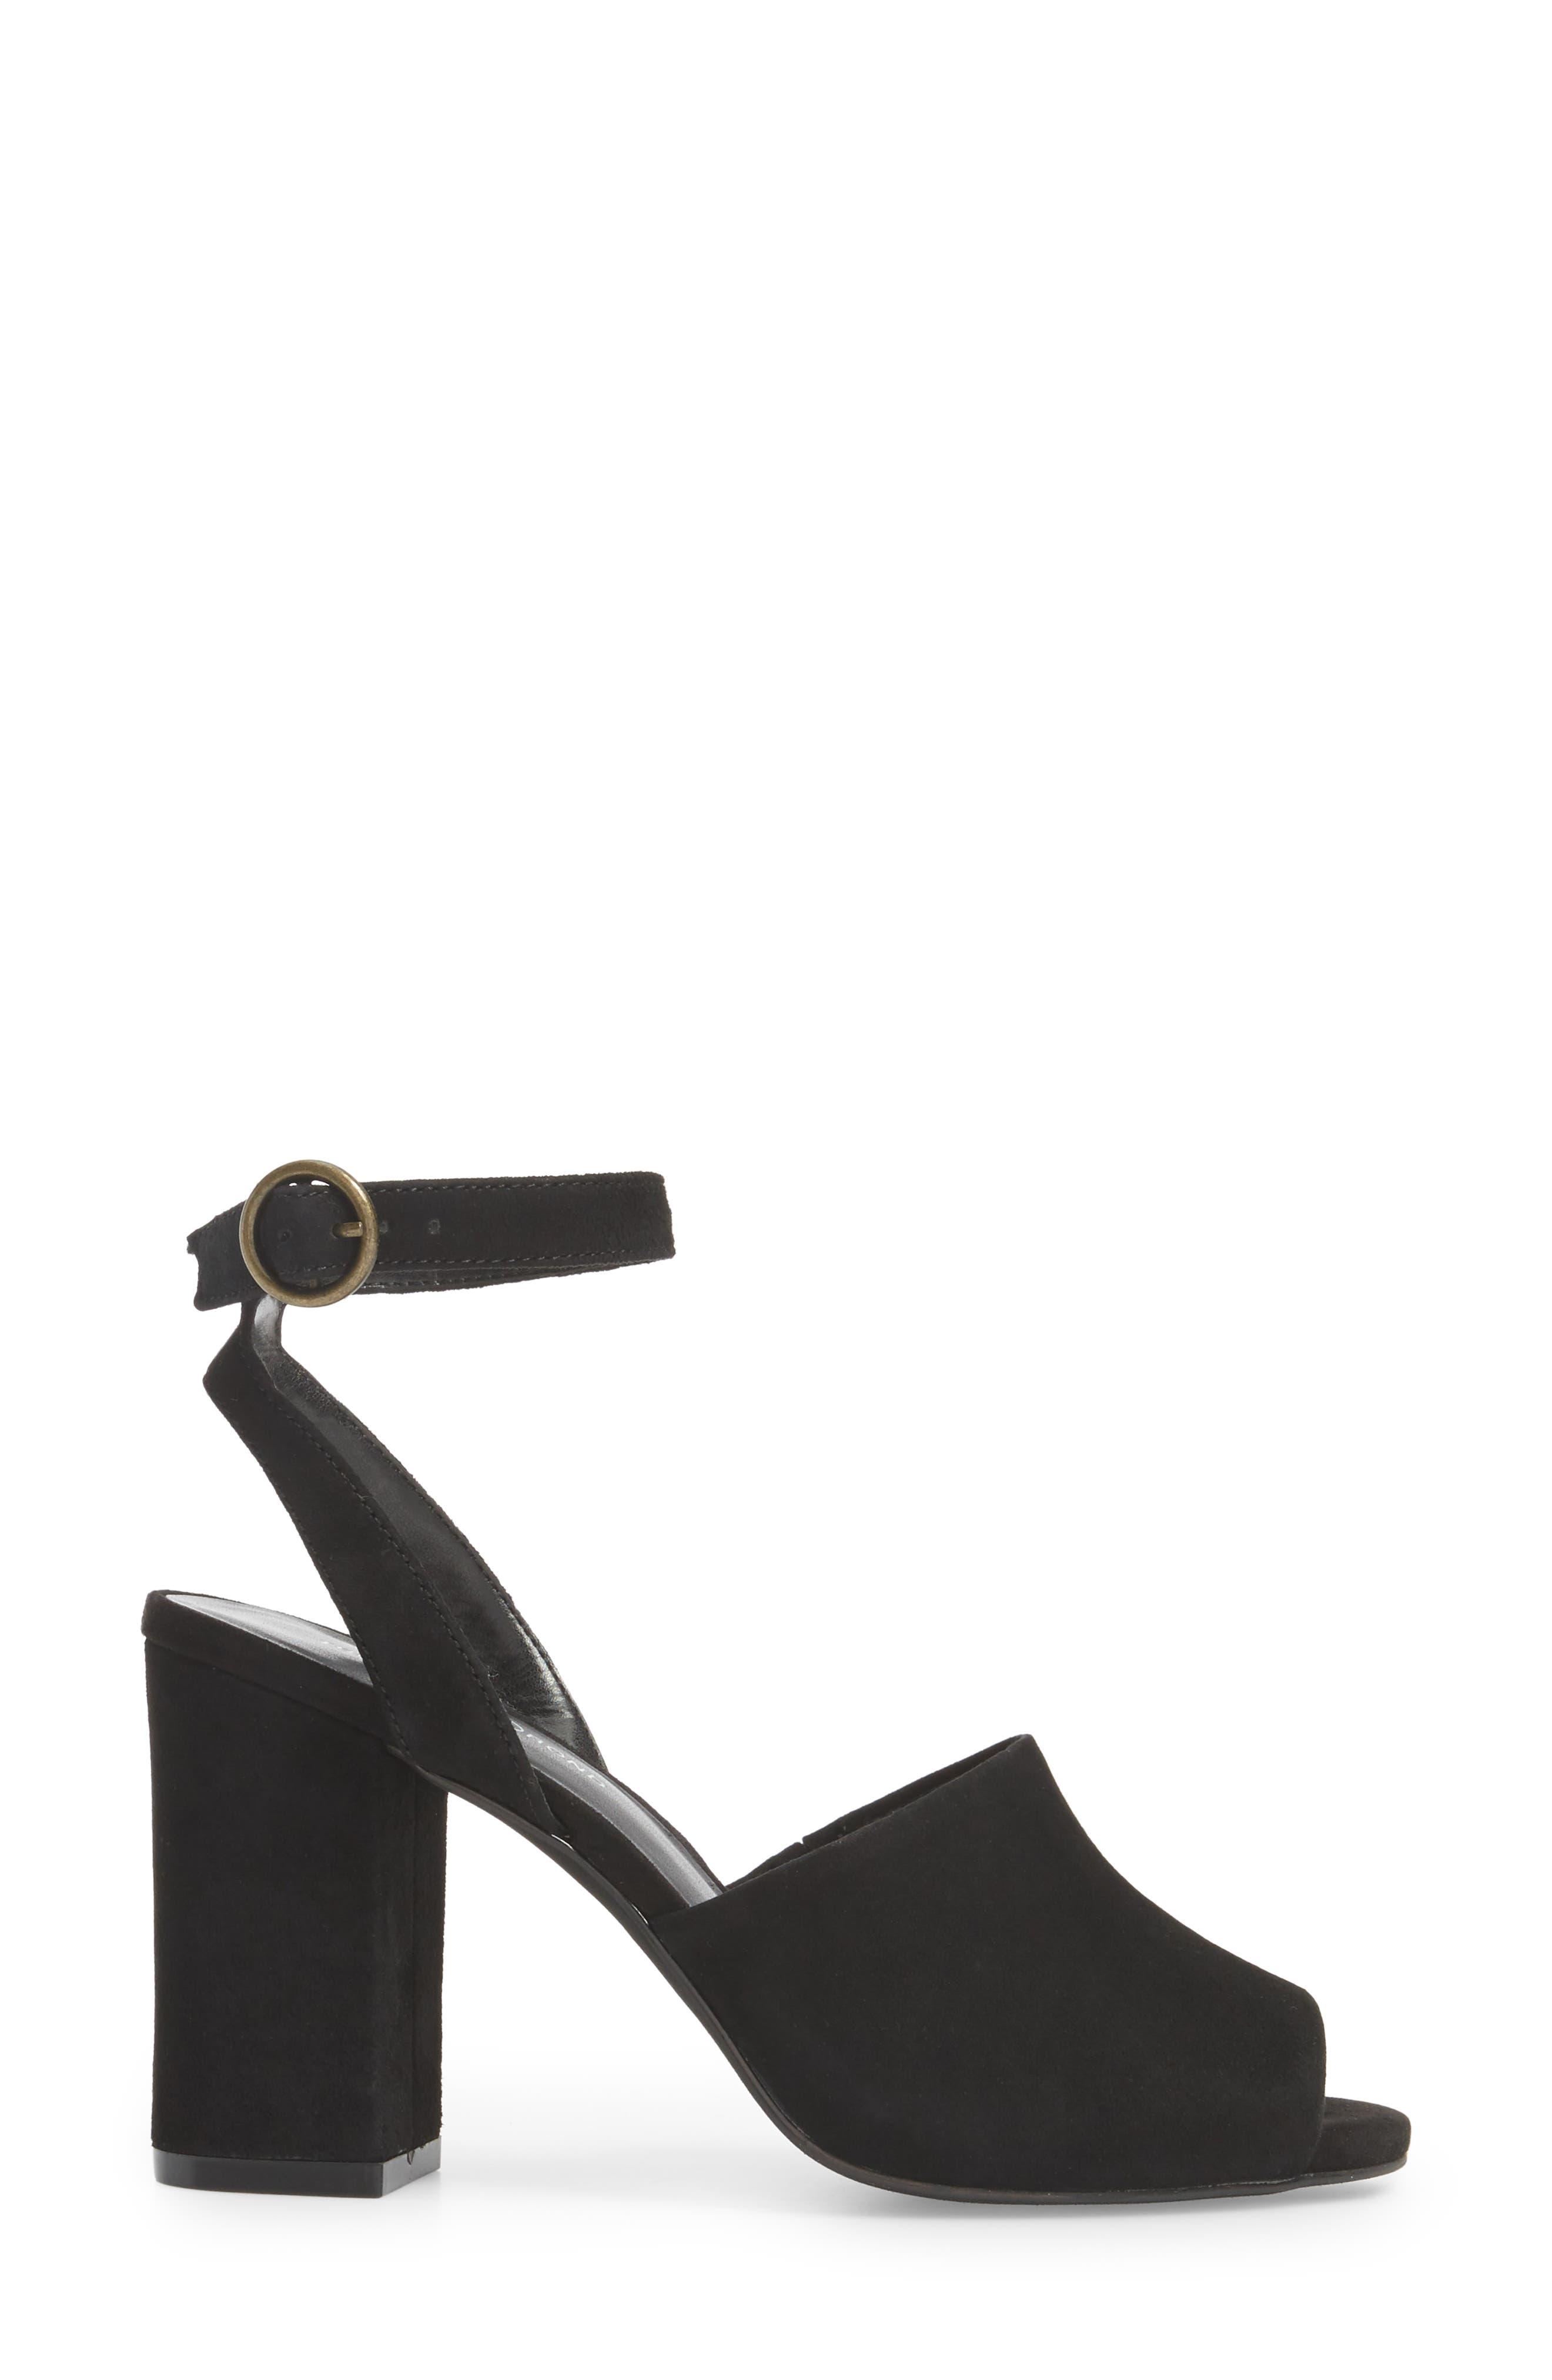 Pipper Block Heel Sandal,                             Alternate thumbnail 3, color,                             BLACK SUEDE